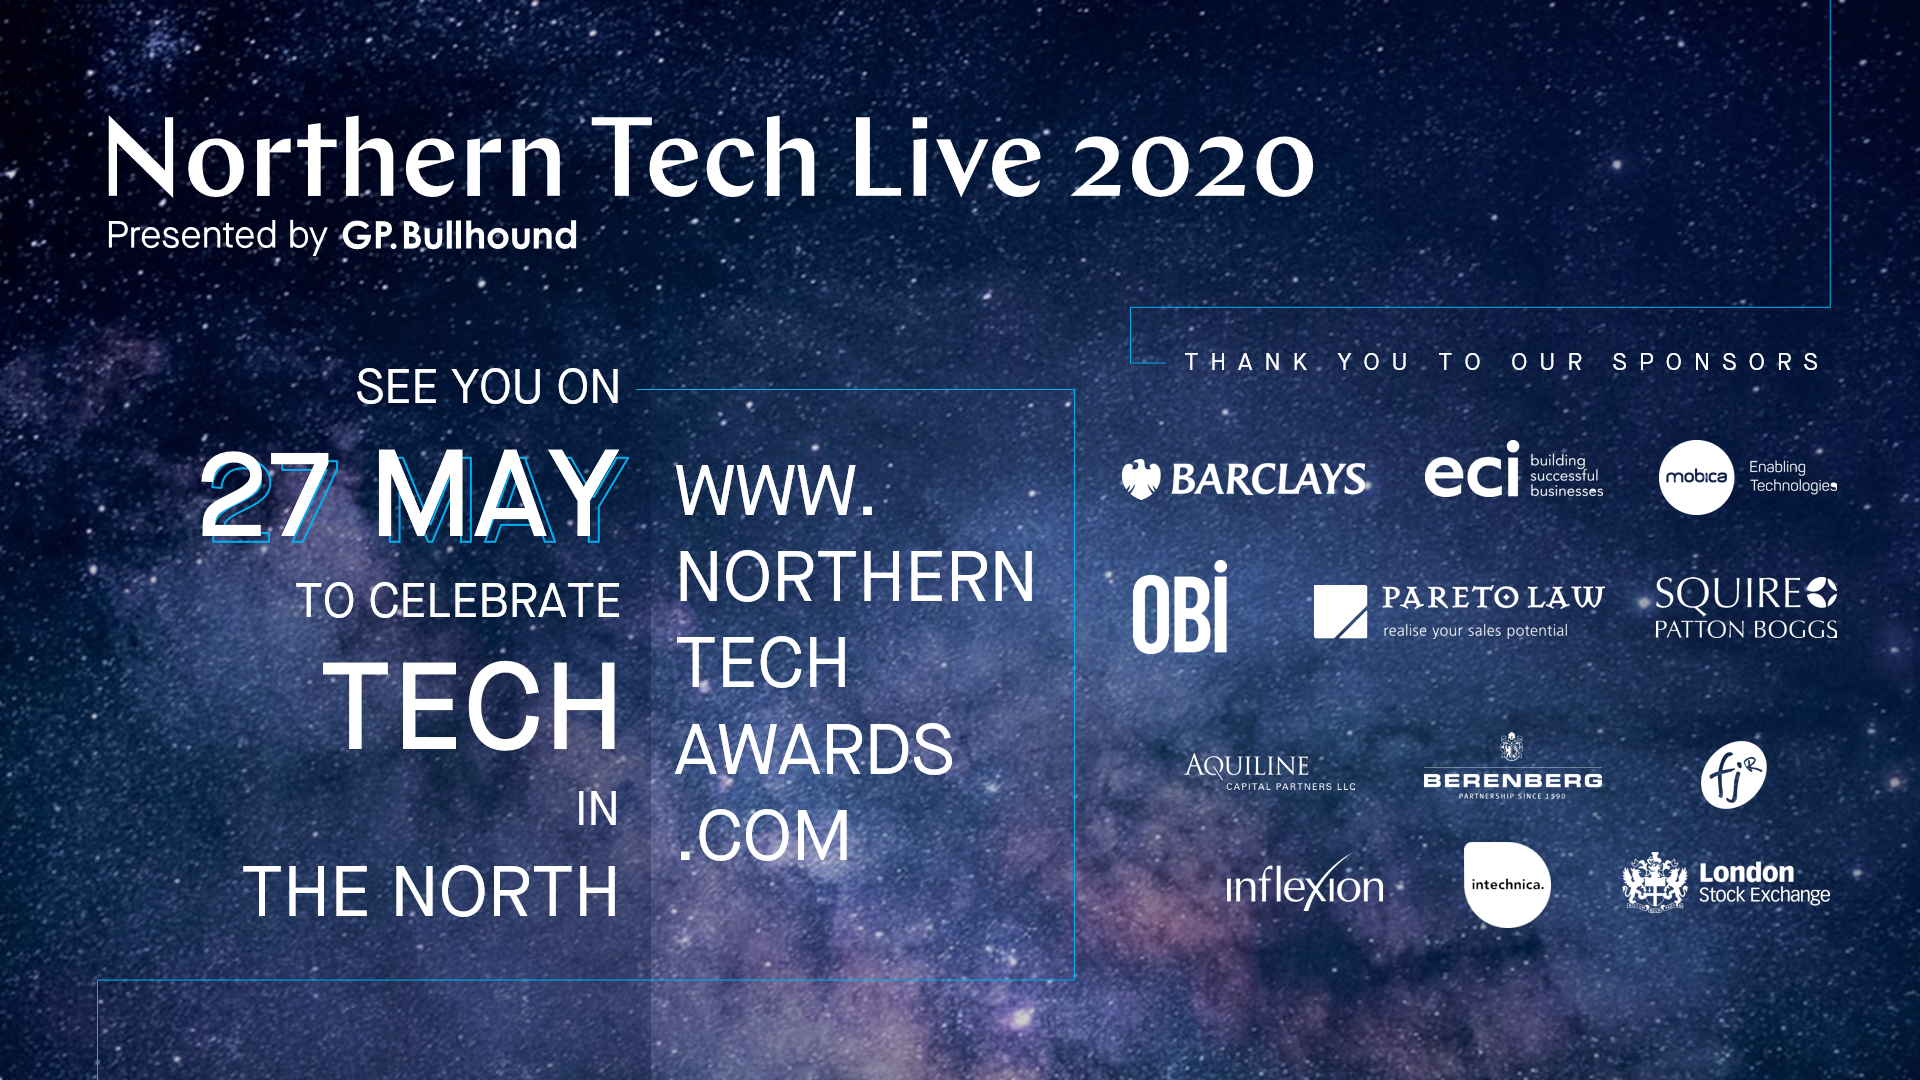 Northern Tech Live 2020